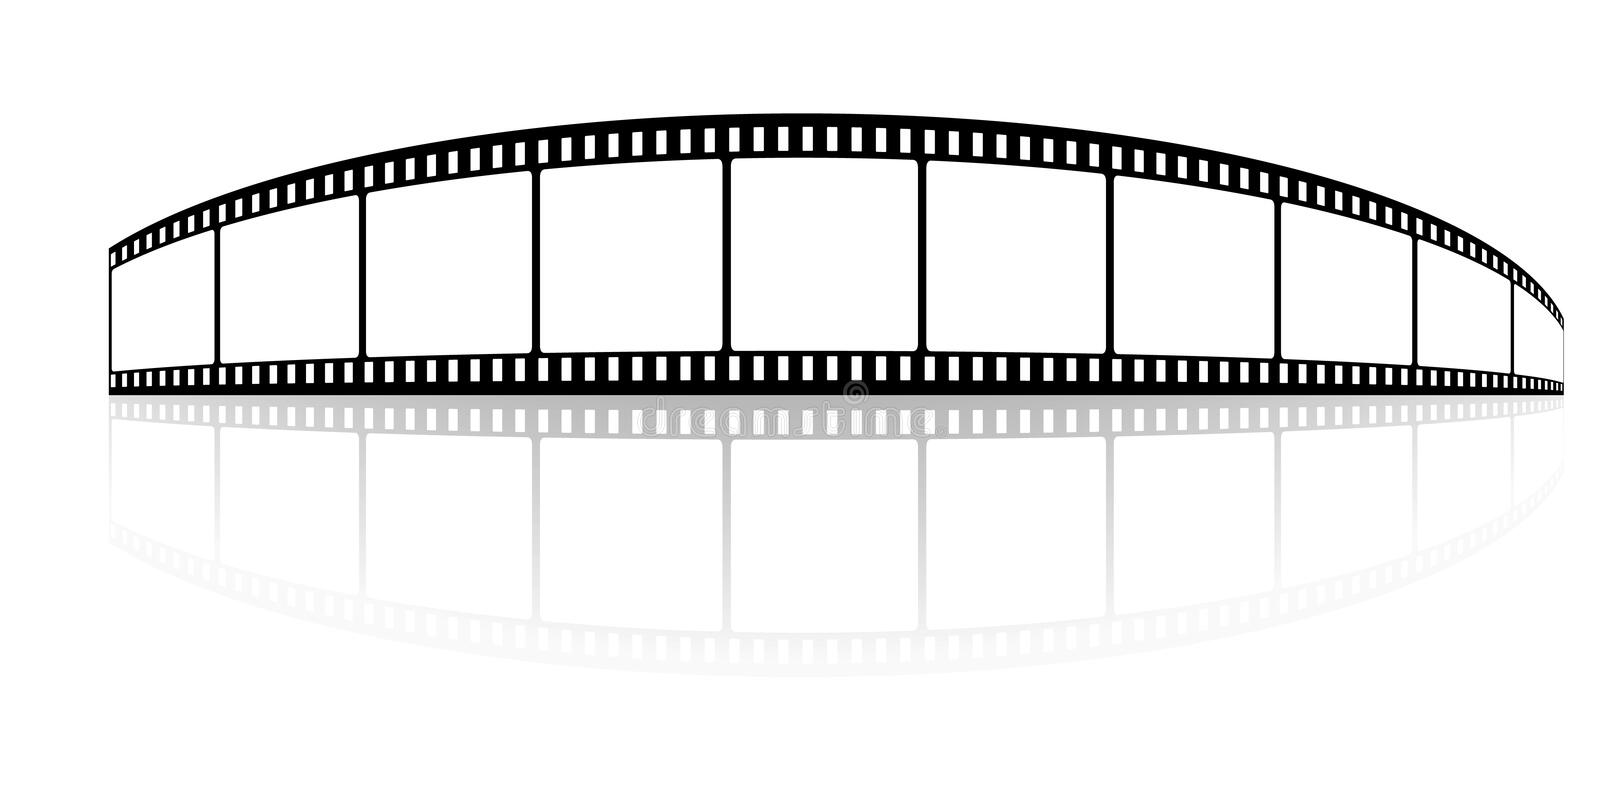 Download Film stock vector. Image of textured, retro, clip, blank - 9036600